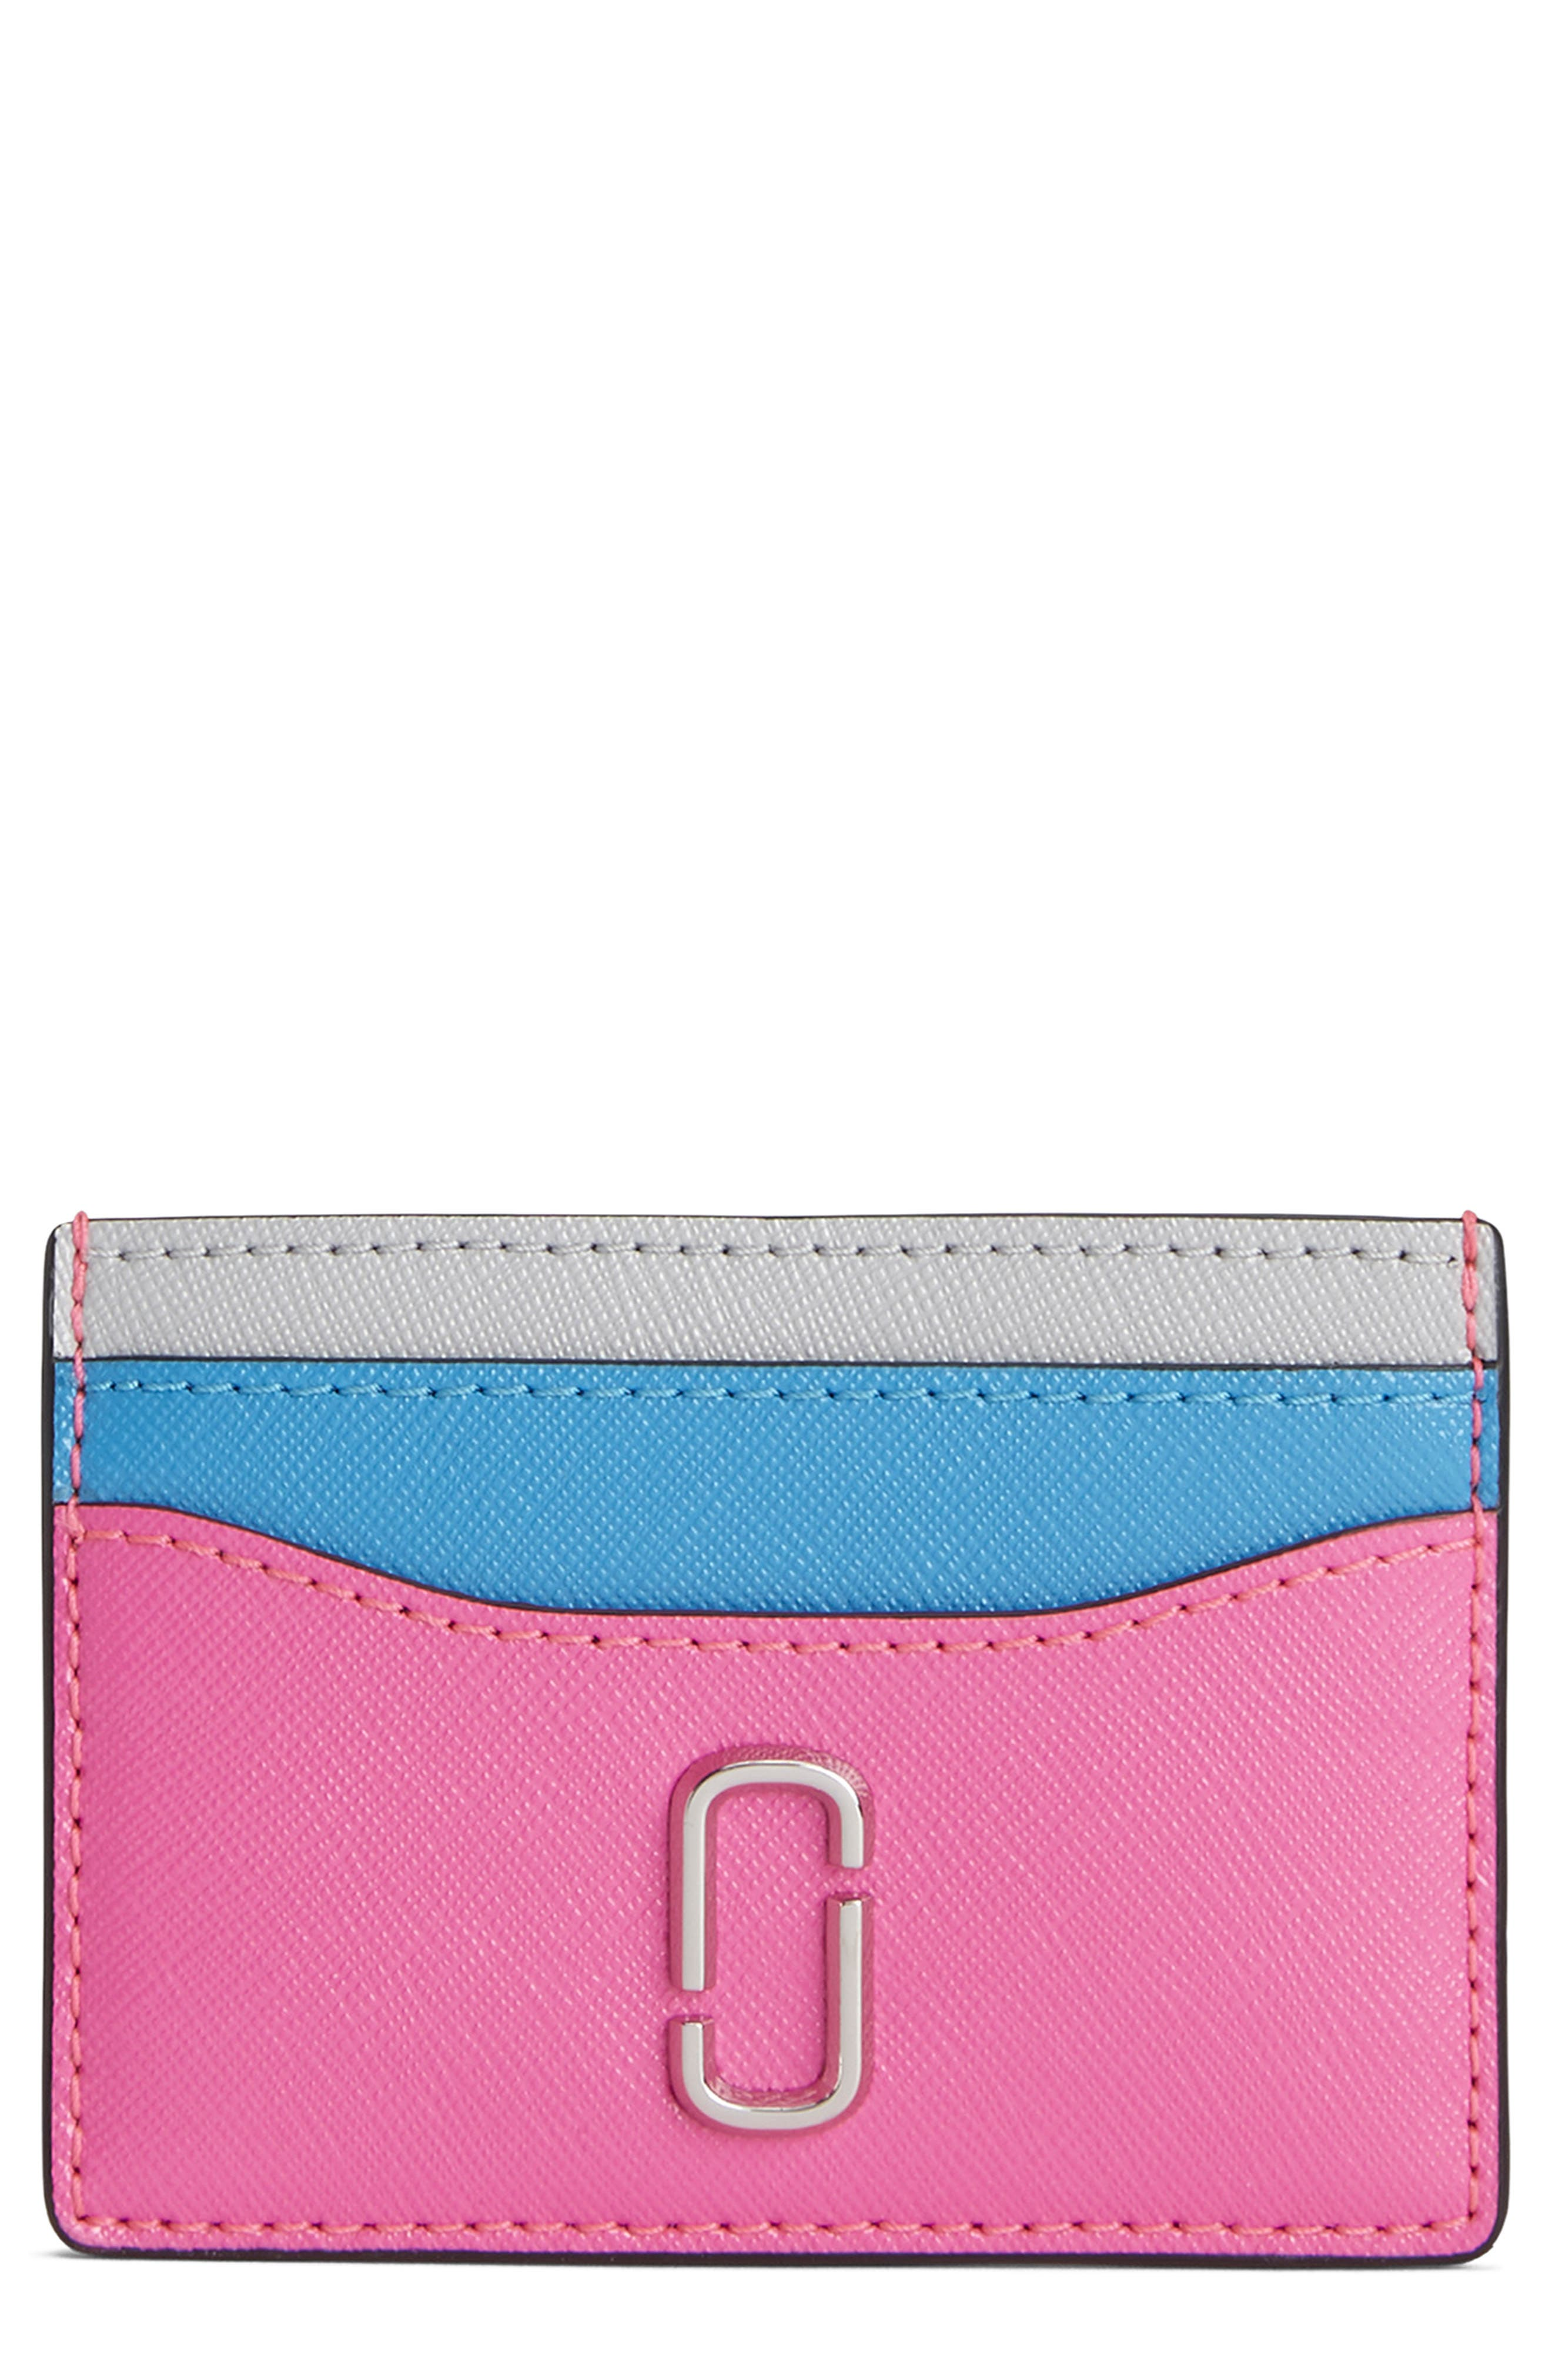 Snapshot Leather Card Case,                             Main thumbnail 1, color,                             BRIGHT PINK MULTI